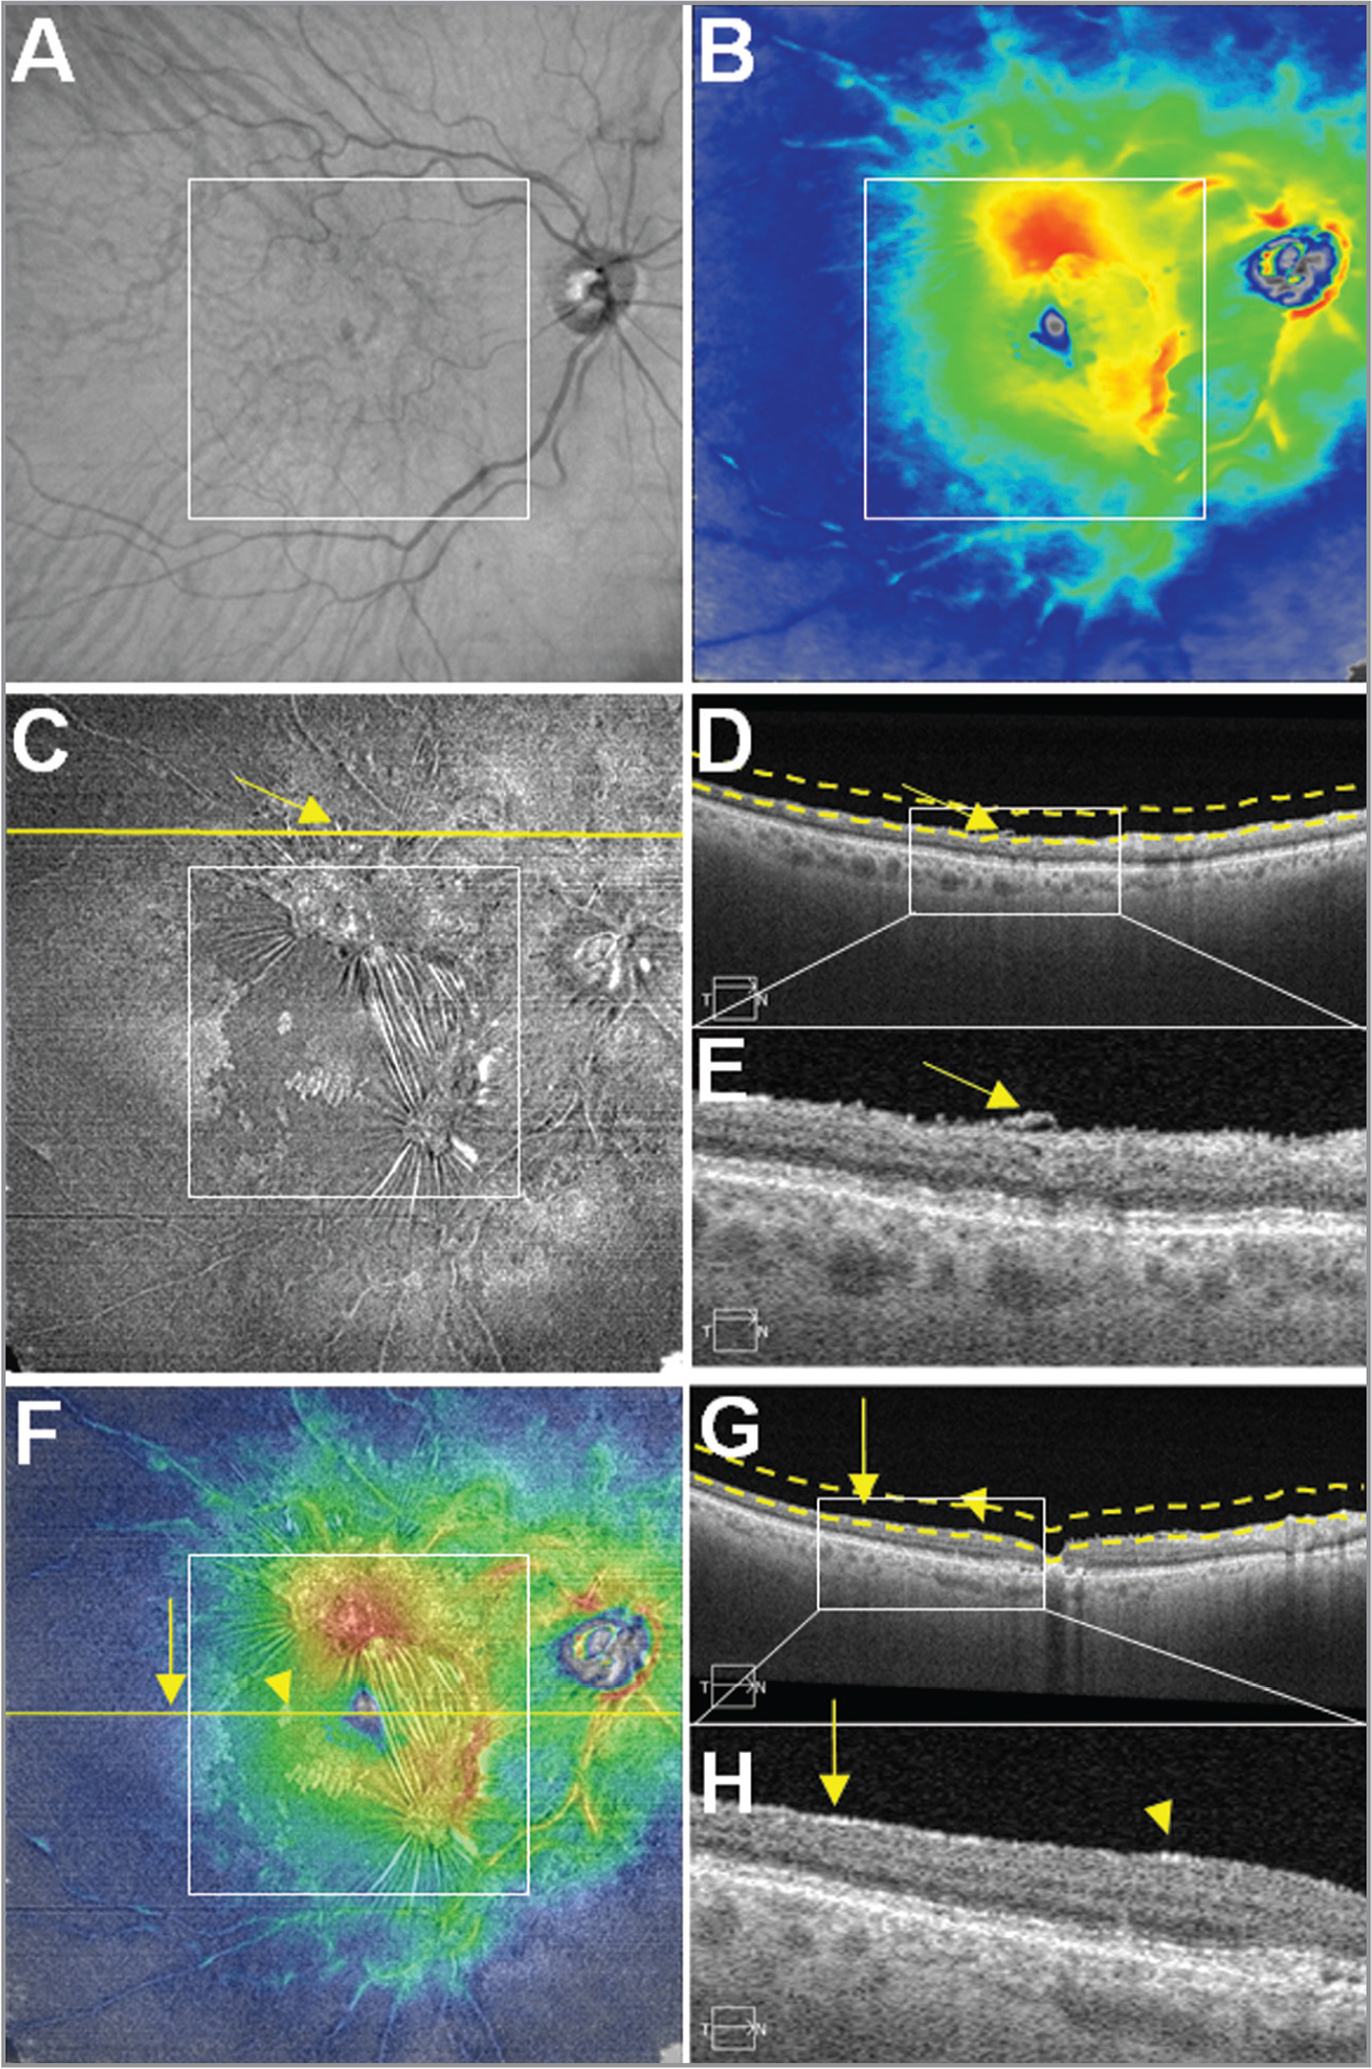 Case No. 3: Multi-segmented images from a single 12 mm × 12 mm swept-source optical coherence tomography (SS-OCT) scan of an epiretinal membrane (ERM) in the right eye of an 85-year-old woman. The white square boxes centered on the fovea in panels A, B, C, and F represent a 6 mm × 6 mm field of view (FOV). (A) OCT fundus image. Superior arcade reveals asymmetrical vessel tortuosity. (B) Retinal thickness map (RTM). Observe the disturbances of macular thickness. (C) Vitreoretinal interface (VRI) en face image. The image shows a hyperreflective ERM, which is composed of two focal adherences. Both are present within and spread outside the 6 mm × 6 mm FOV. Yellow arrows in images C, D, and E designate a digit of the superior focal adherence stretching outside 6 mm × 6 mm. (D) B-scan corresponding to the yellow line outside the 6 mm × 6 mm white square shown in image C. Dashed lines define the upper and lower boundaries of the VRI en face slab. (E) Magnification of the white rectangle of the image D. This demonstrates the extent of the ERM outside the 6 mm × 6 mm FOV, as well as retinal folds. (F) Overlay of Panel B (60% transparency) on top of Panel C. Yellow horizontal line represents the foveal B-scan. Yellow vertical arrow in Panels F, G, and H highlight the extent of the ERM outside the 6 mm × 6 mm FOV, whereas the yellow arrowheads designate an isolated foci of the ERM within the 6 mm × 6 mm FOV. (G) Foveal B-scan. Dashed lines define the upper and lower boundaries of the VRI en face slab. (H) Magnified B-scan from within the white square shown in Panel G. The ERM extends from inside the 6 mm × 6 mm FOV (yellow arrowhead) to outside the 6 mm × 6 mm FOV (yellow vertical arrow). Observe the interruption of the ERM from inside (yellow arrowhead) to the outside (yellow vertical arrow) 6 mm × 6 mm FOV.